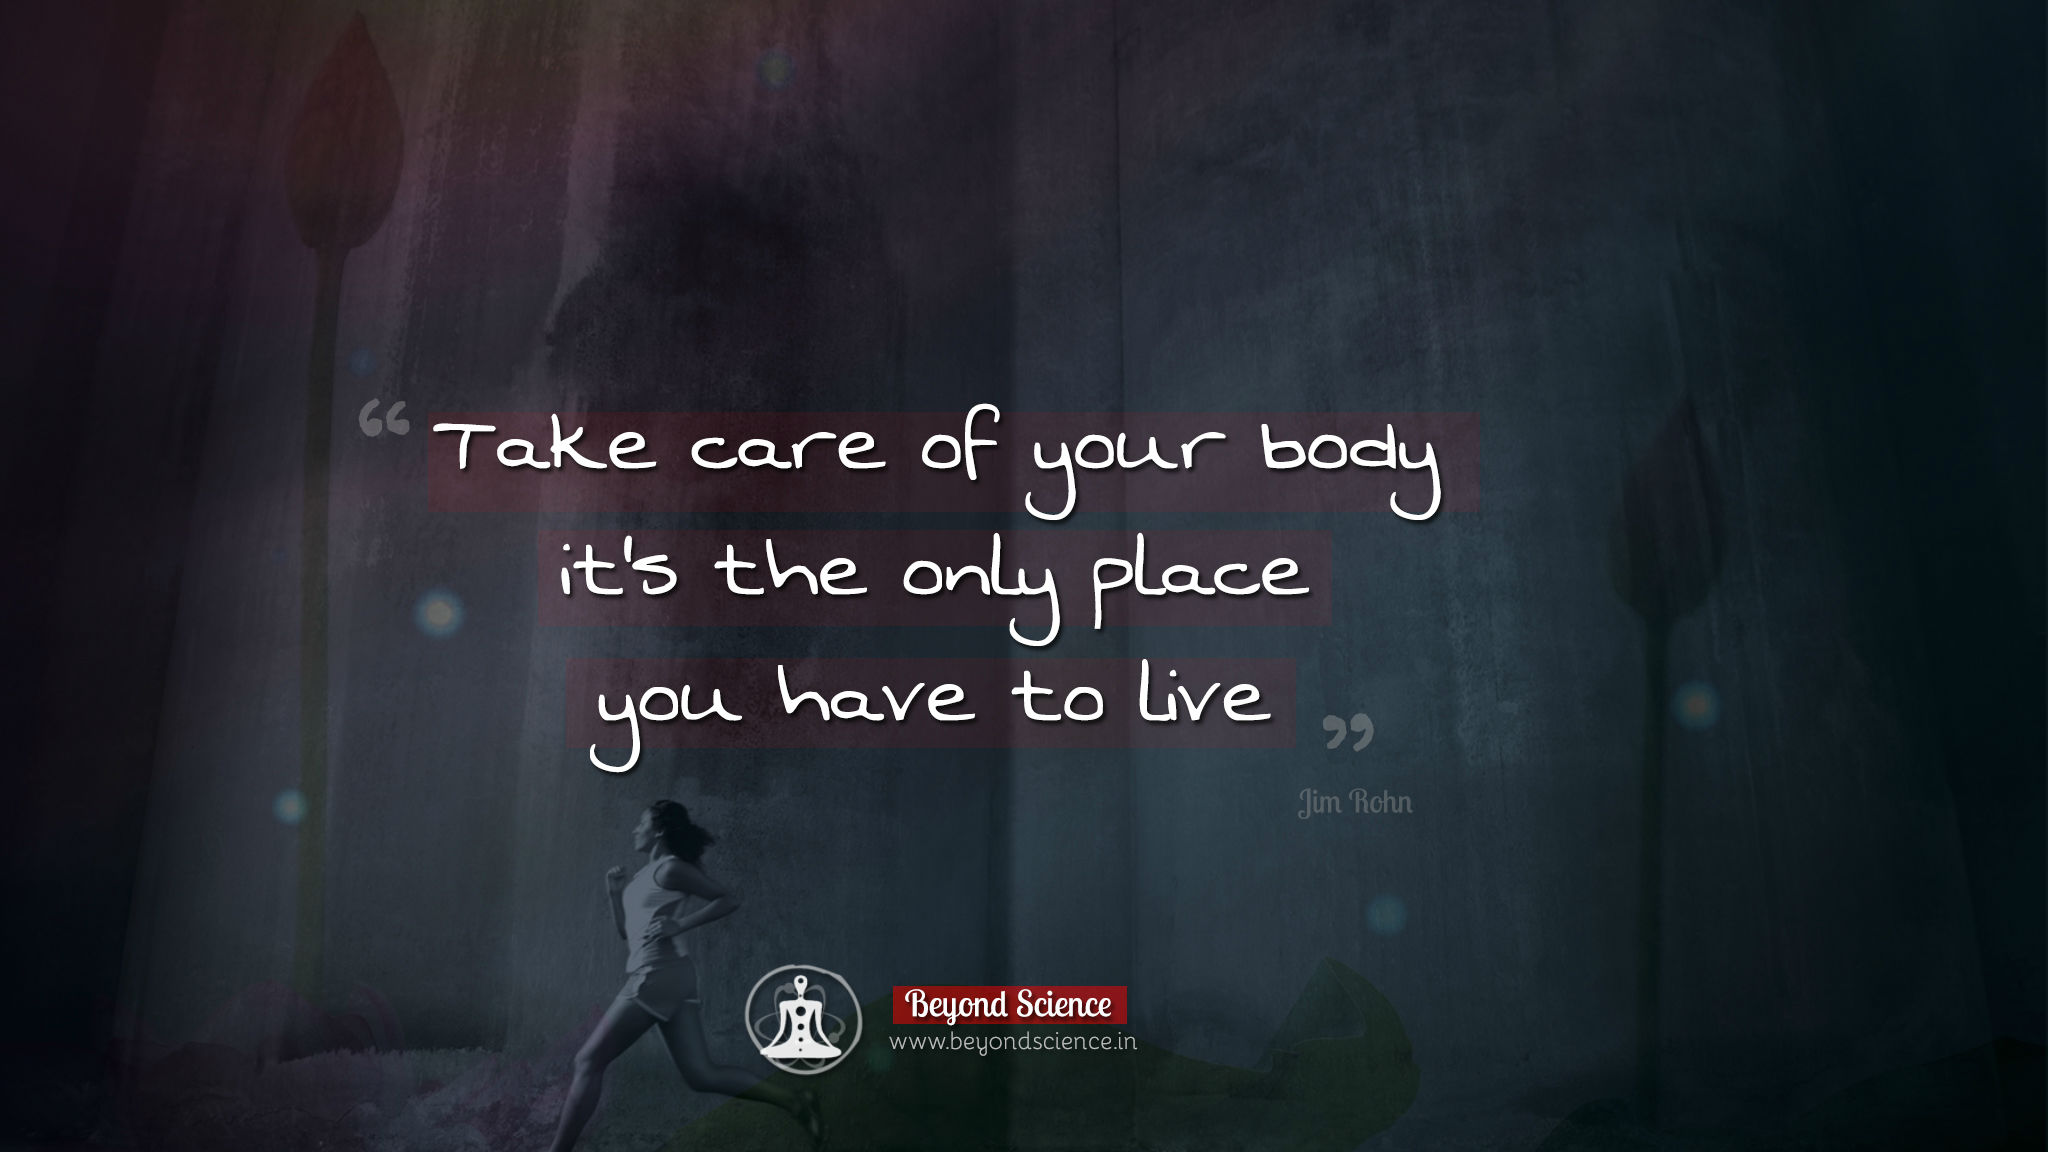 Take care of your body it's the only place you have to live